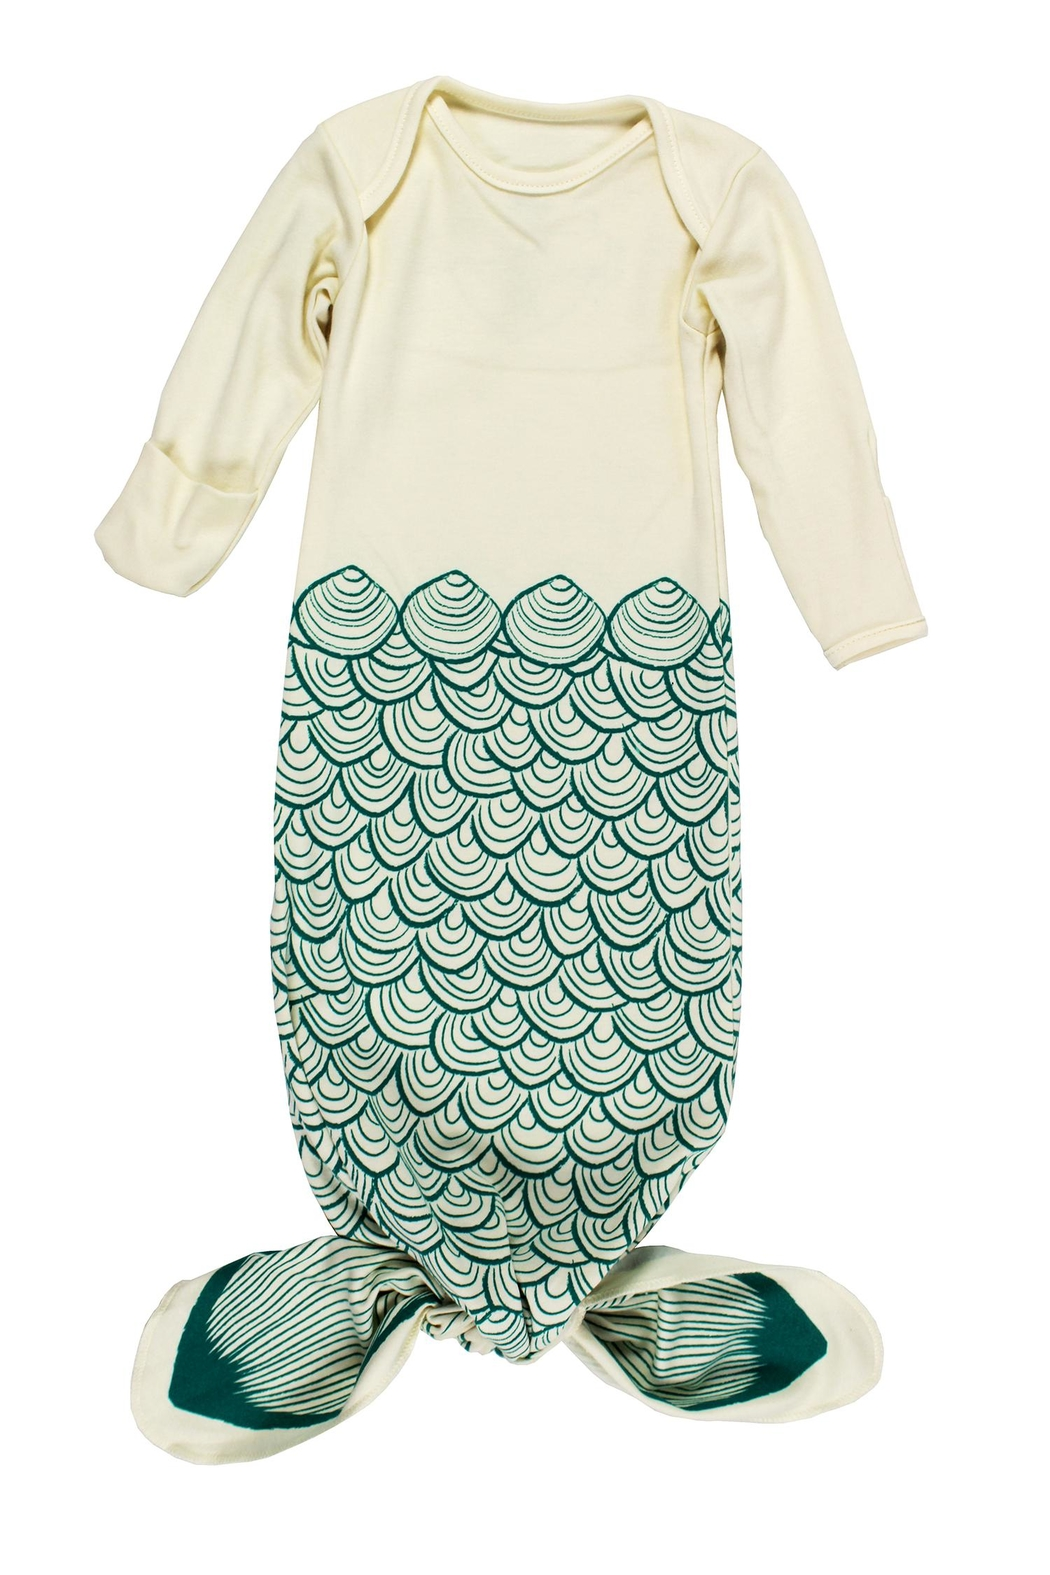 Electrik Kidz Knotted Gown - Mermaid - Main Image